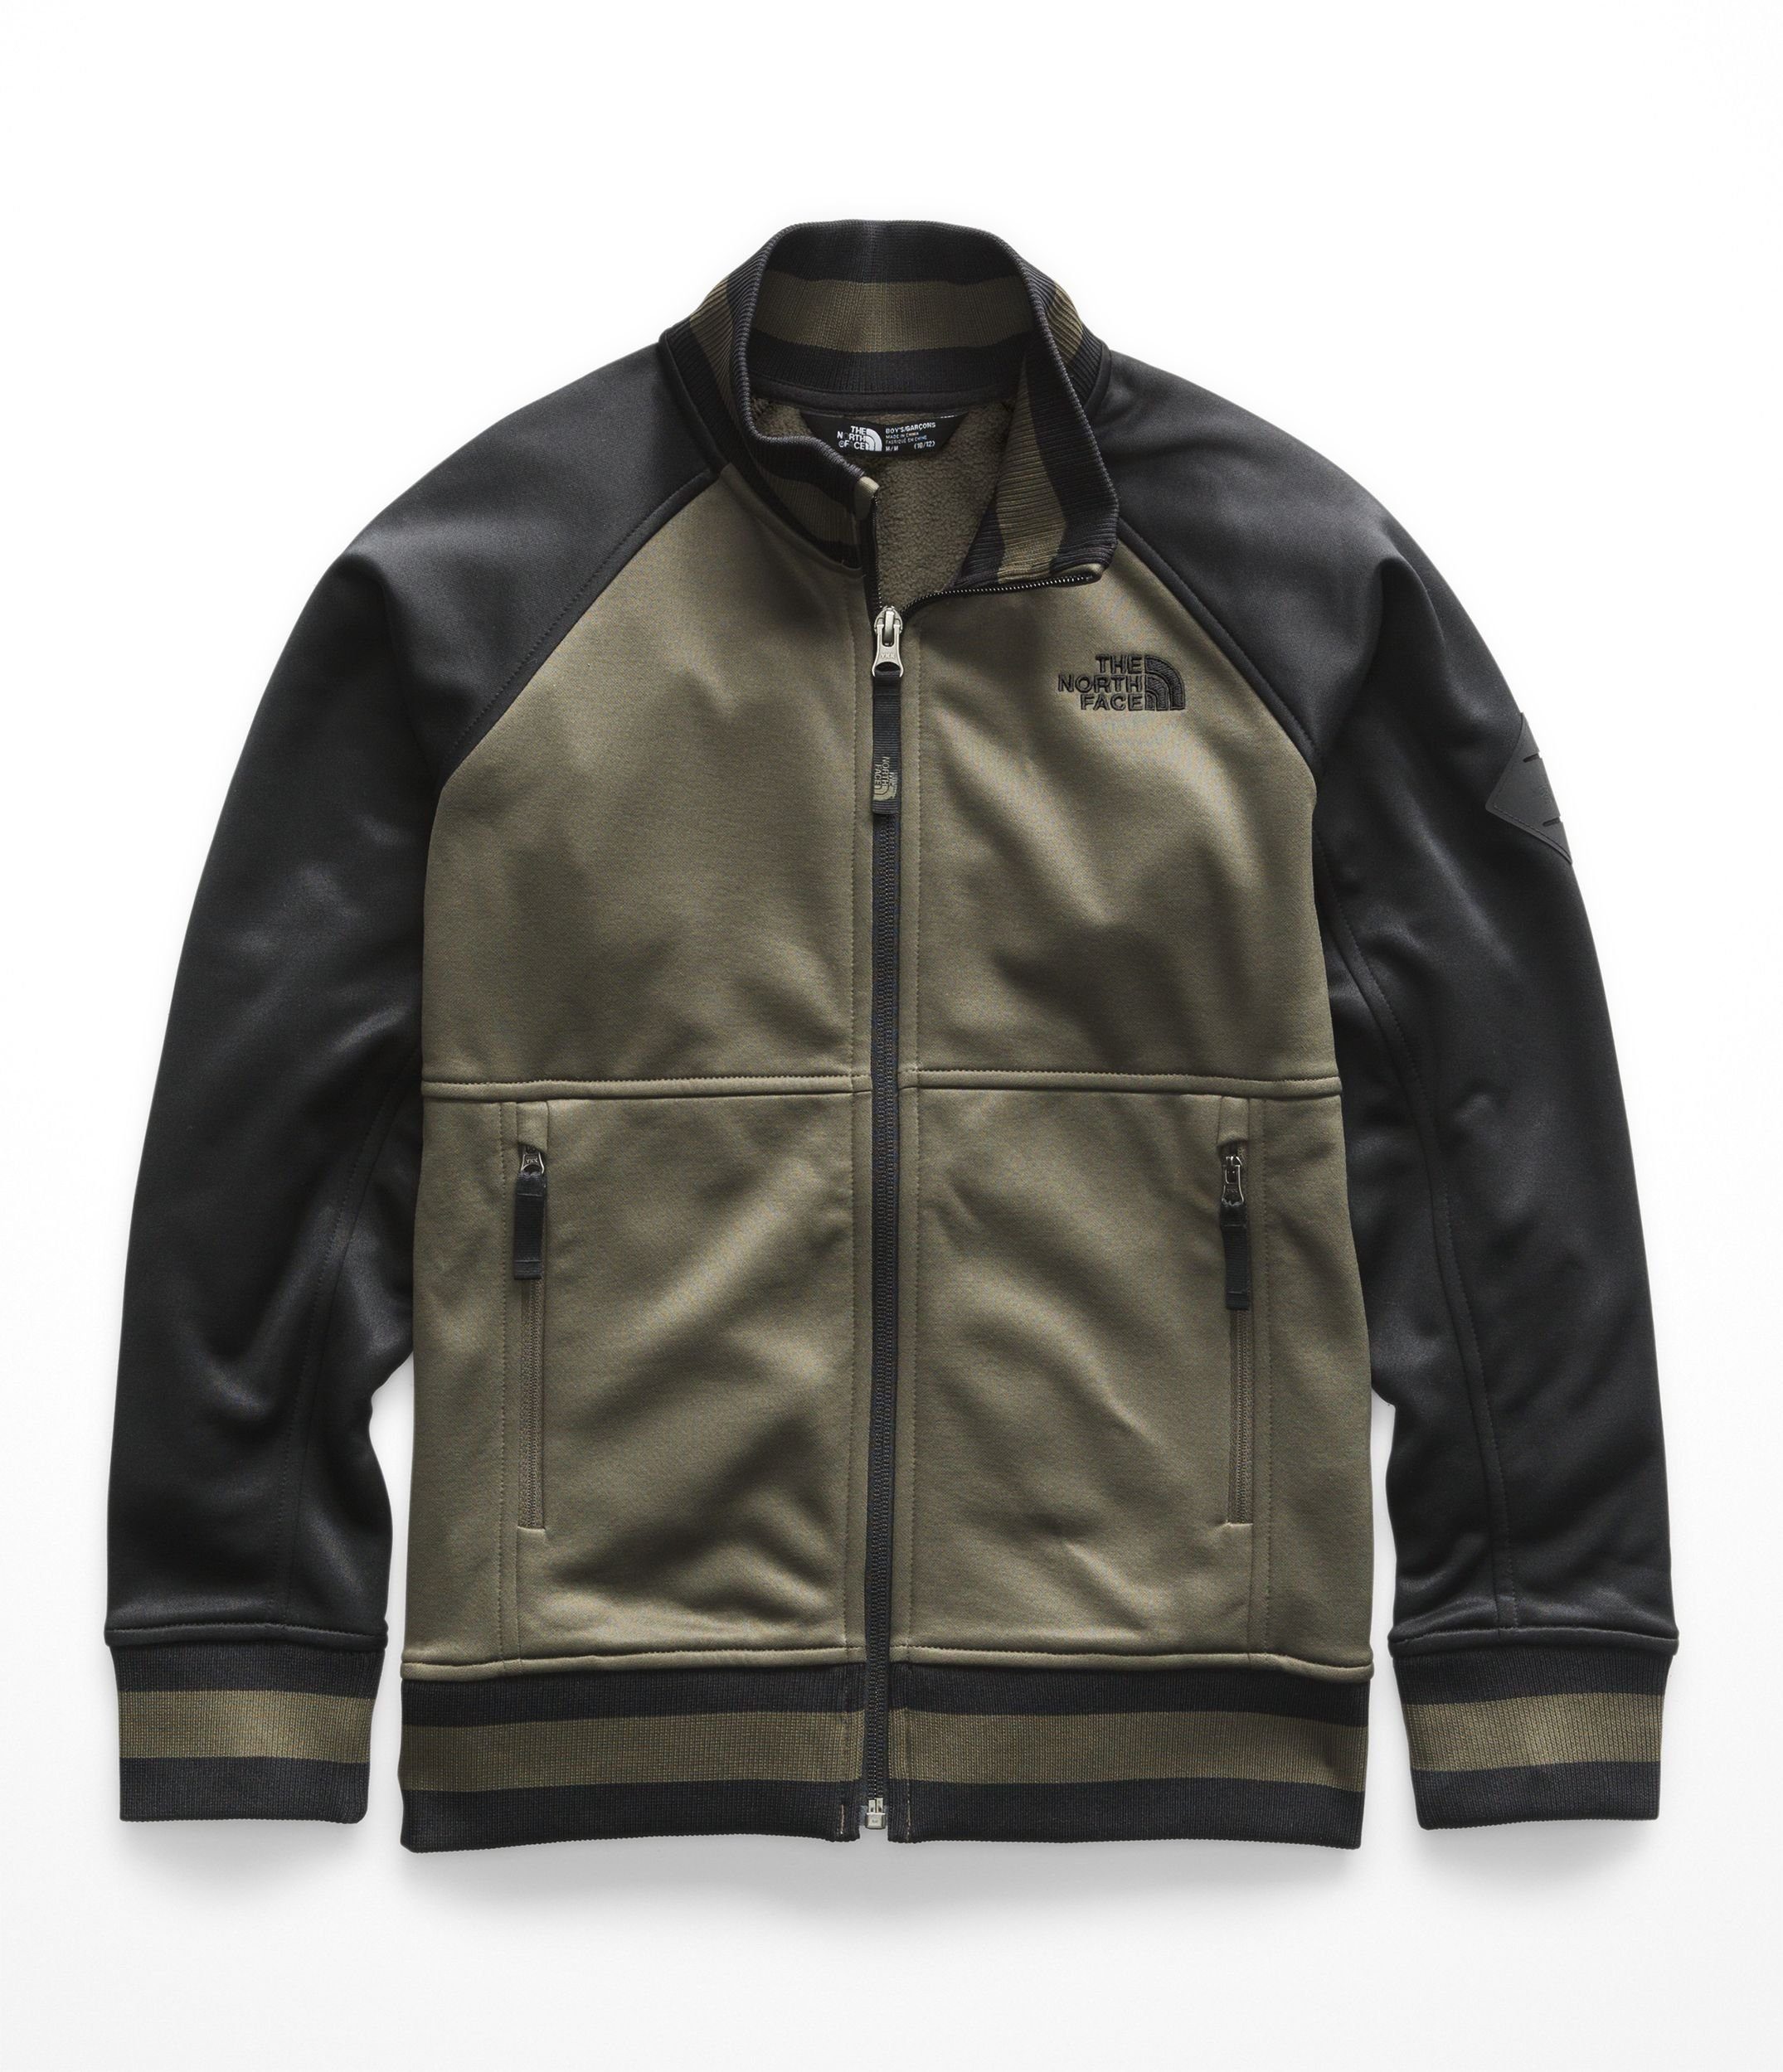 The North Face Boys Takeback Track Jacket - New Taupe Green - L